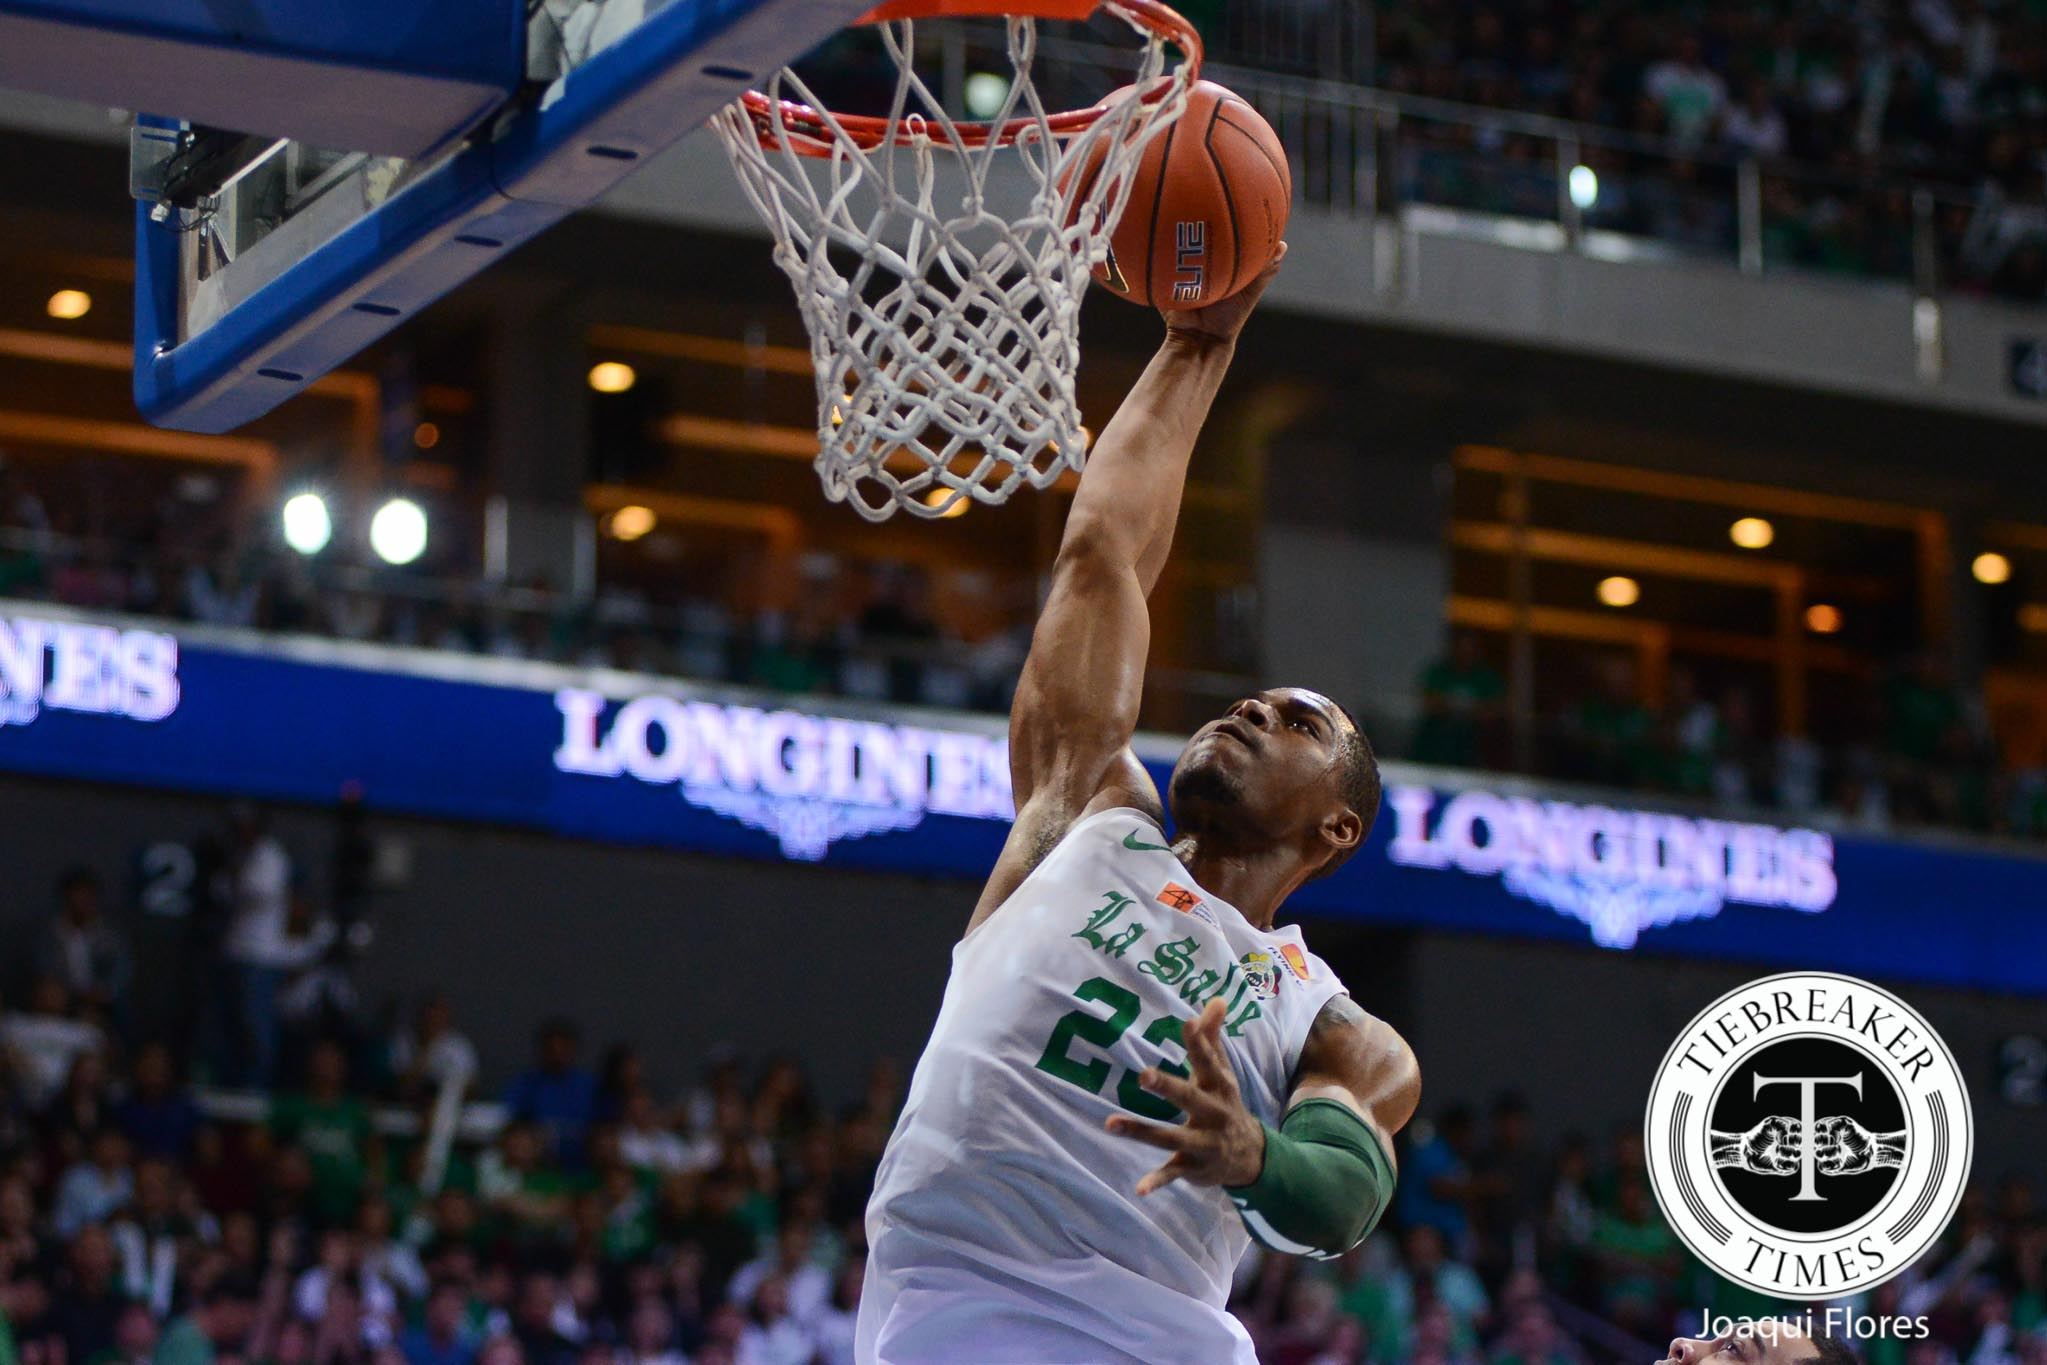 Tiebreaker Times Ben Mbala looks back on epic alley-oop from Torres: 'It was a bad pass' Basketball DLSU News UAAP  UAAP Season 79 Men's Basketball UAAP Season 79 Thomas Torres DLSU Men's Basketball Ben Mbala